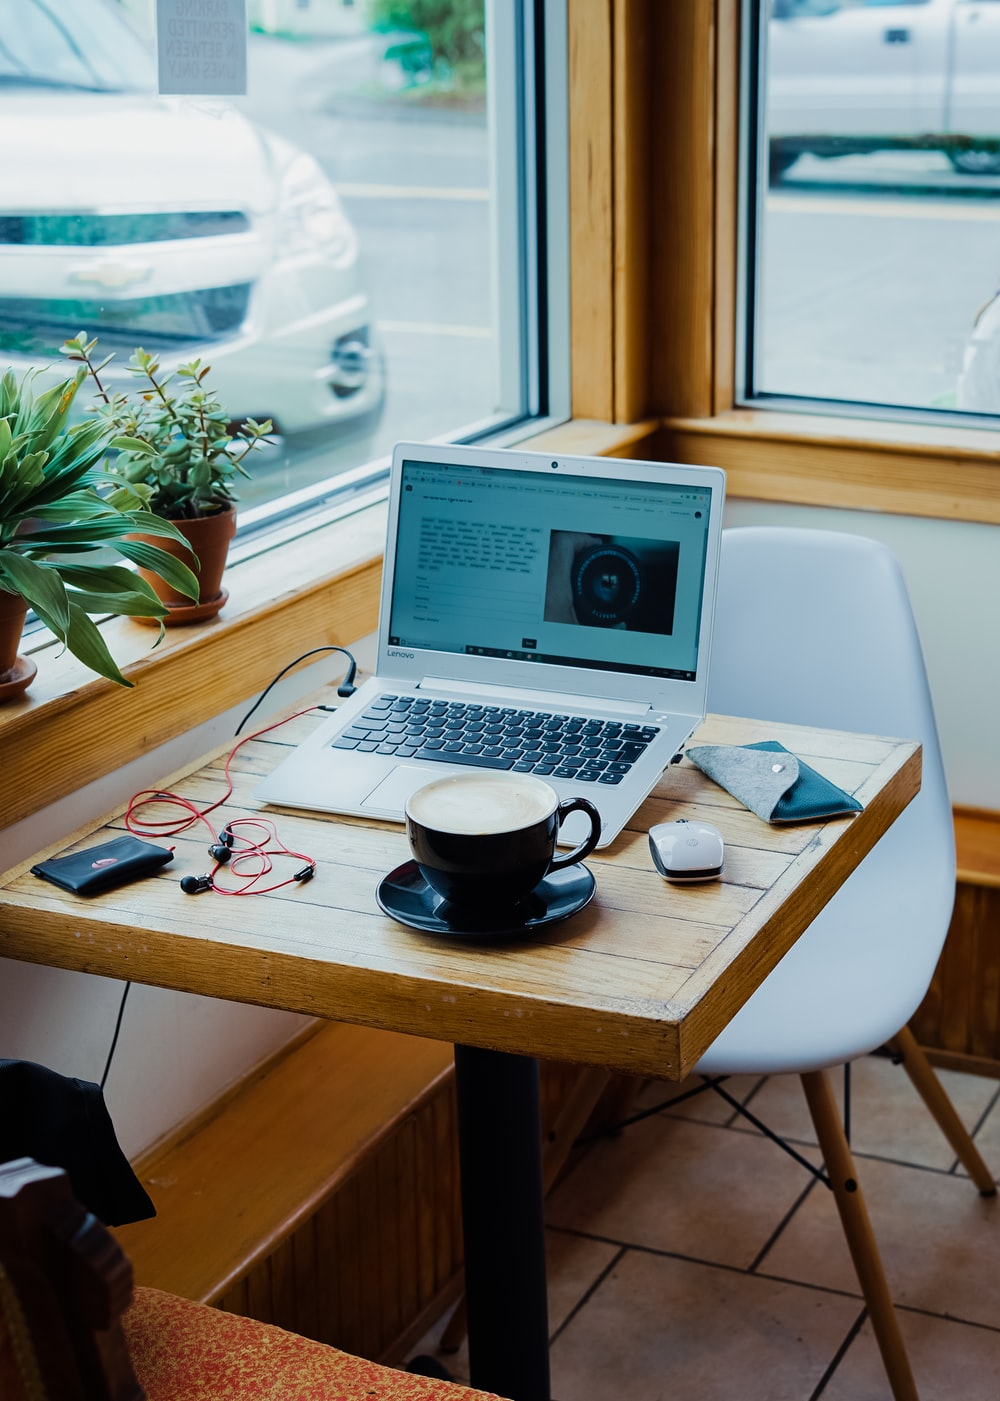 cup of coffee, laptop computer, and red earphones plugged in laptop on brown wooden table